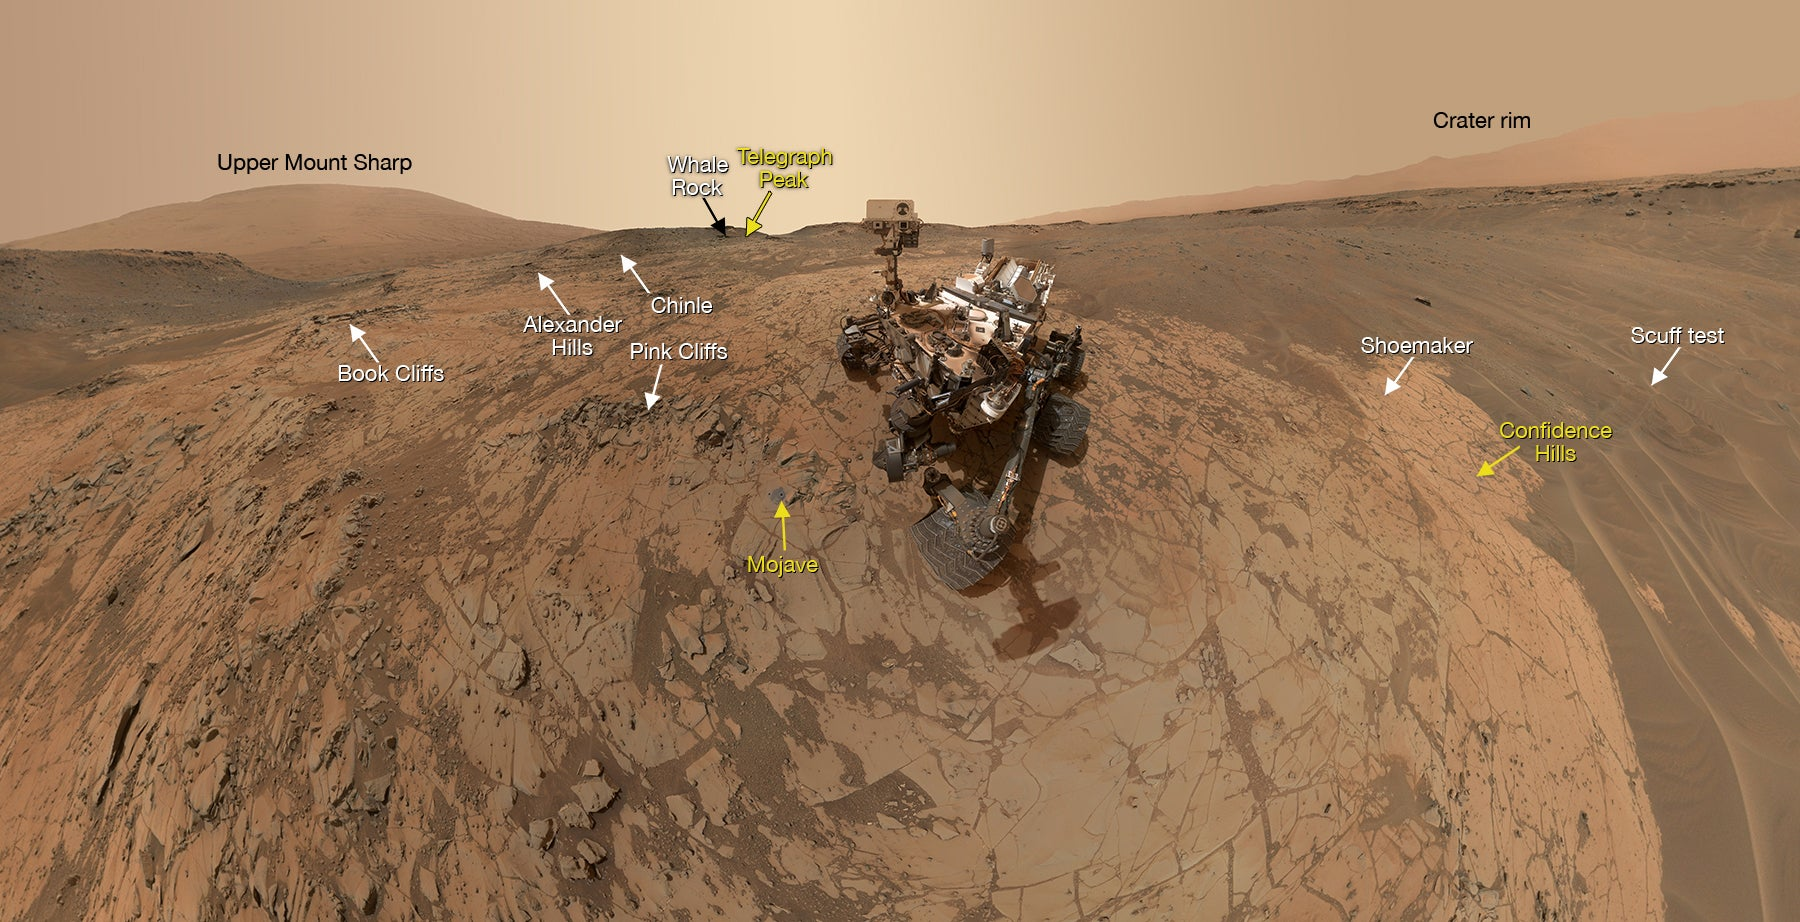 Check out the new (and coolest) Mars Curiosity panorama selfie